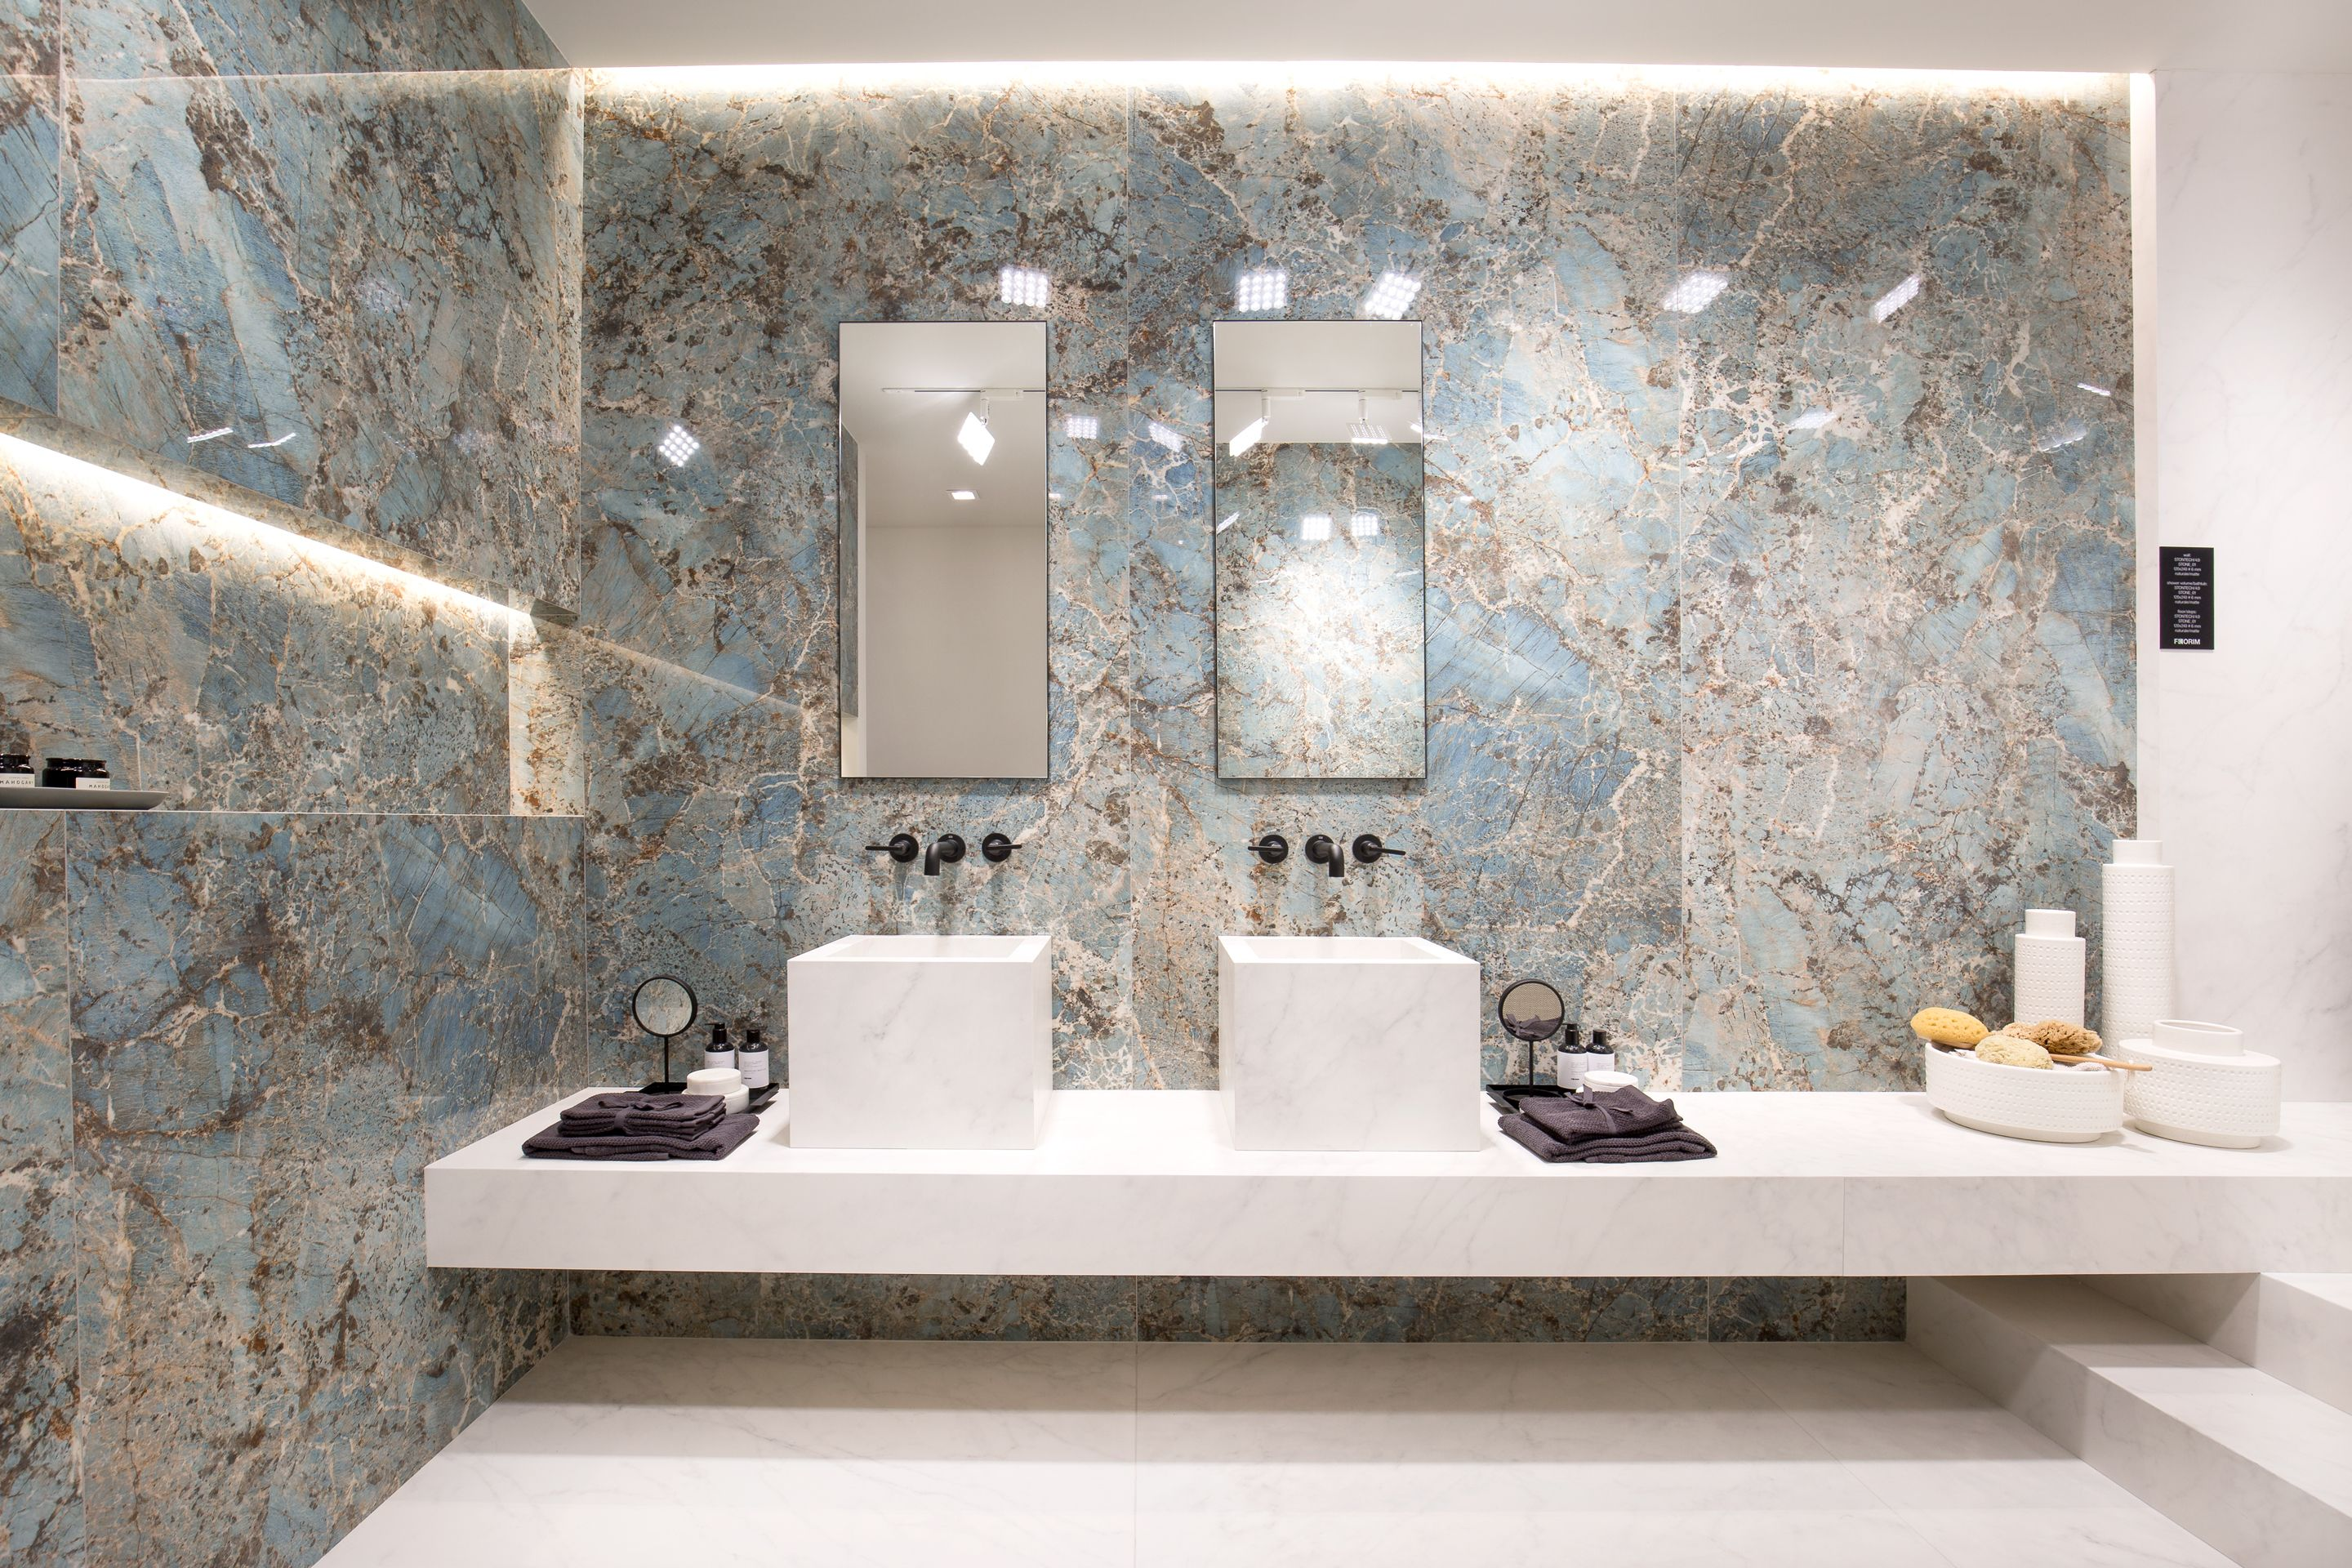 Extra large tiles and surfaces for the bathroom and beyond